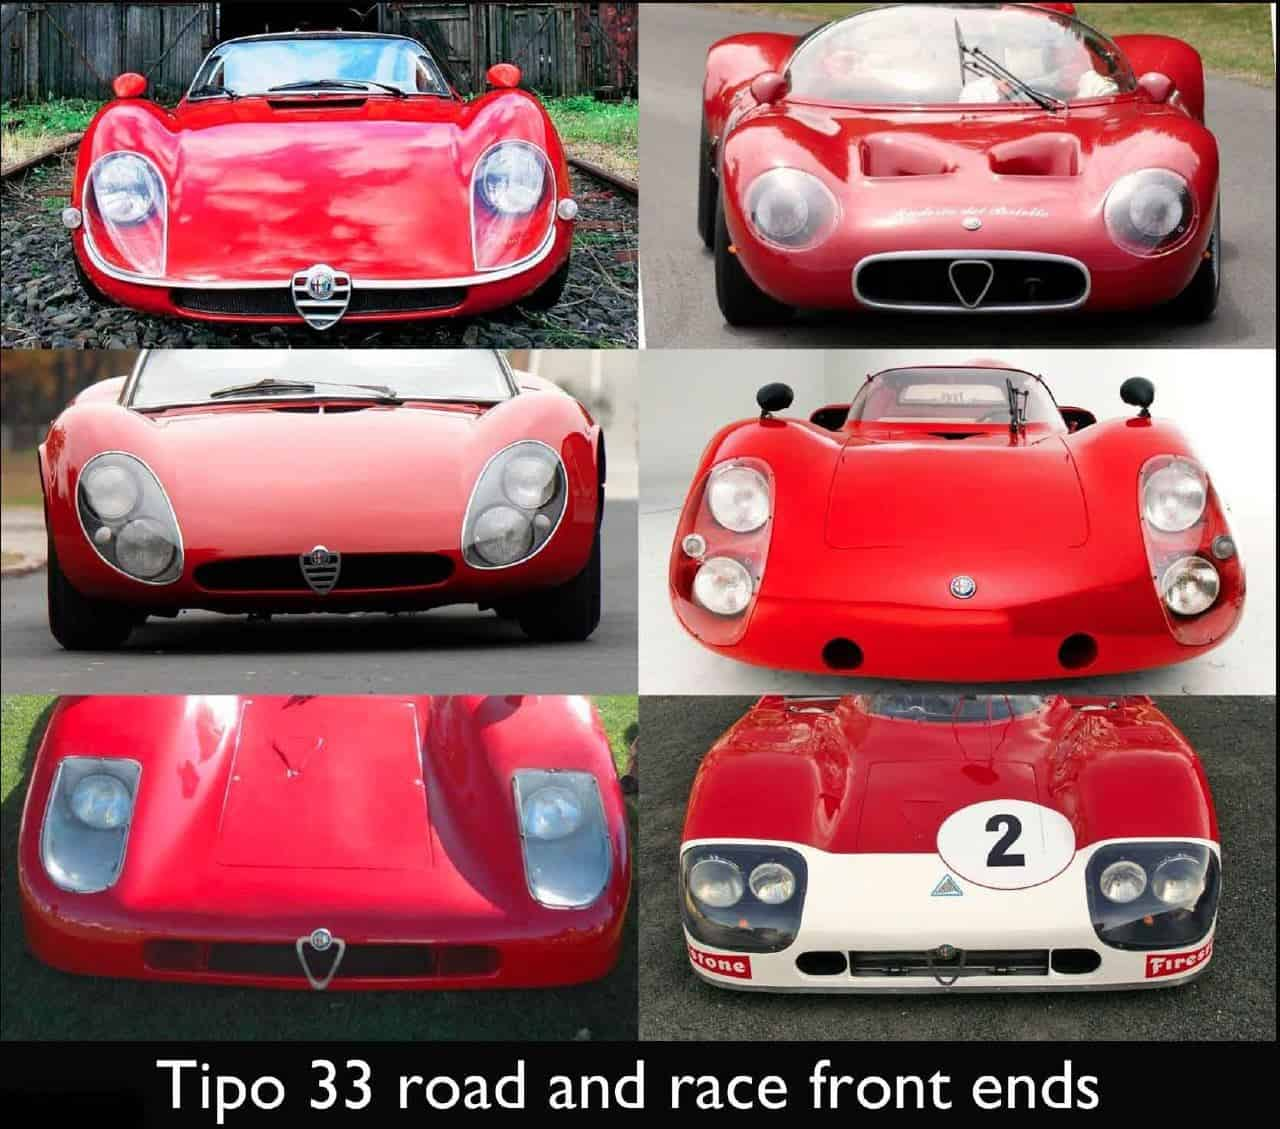 Revisiting The 1967 Alfa Romeo Tipo 33 'Stradale'